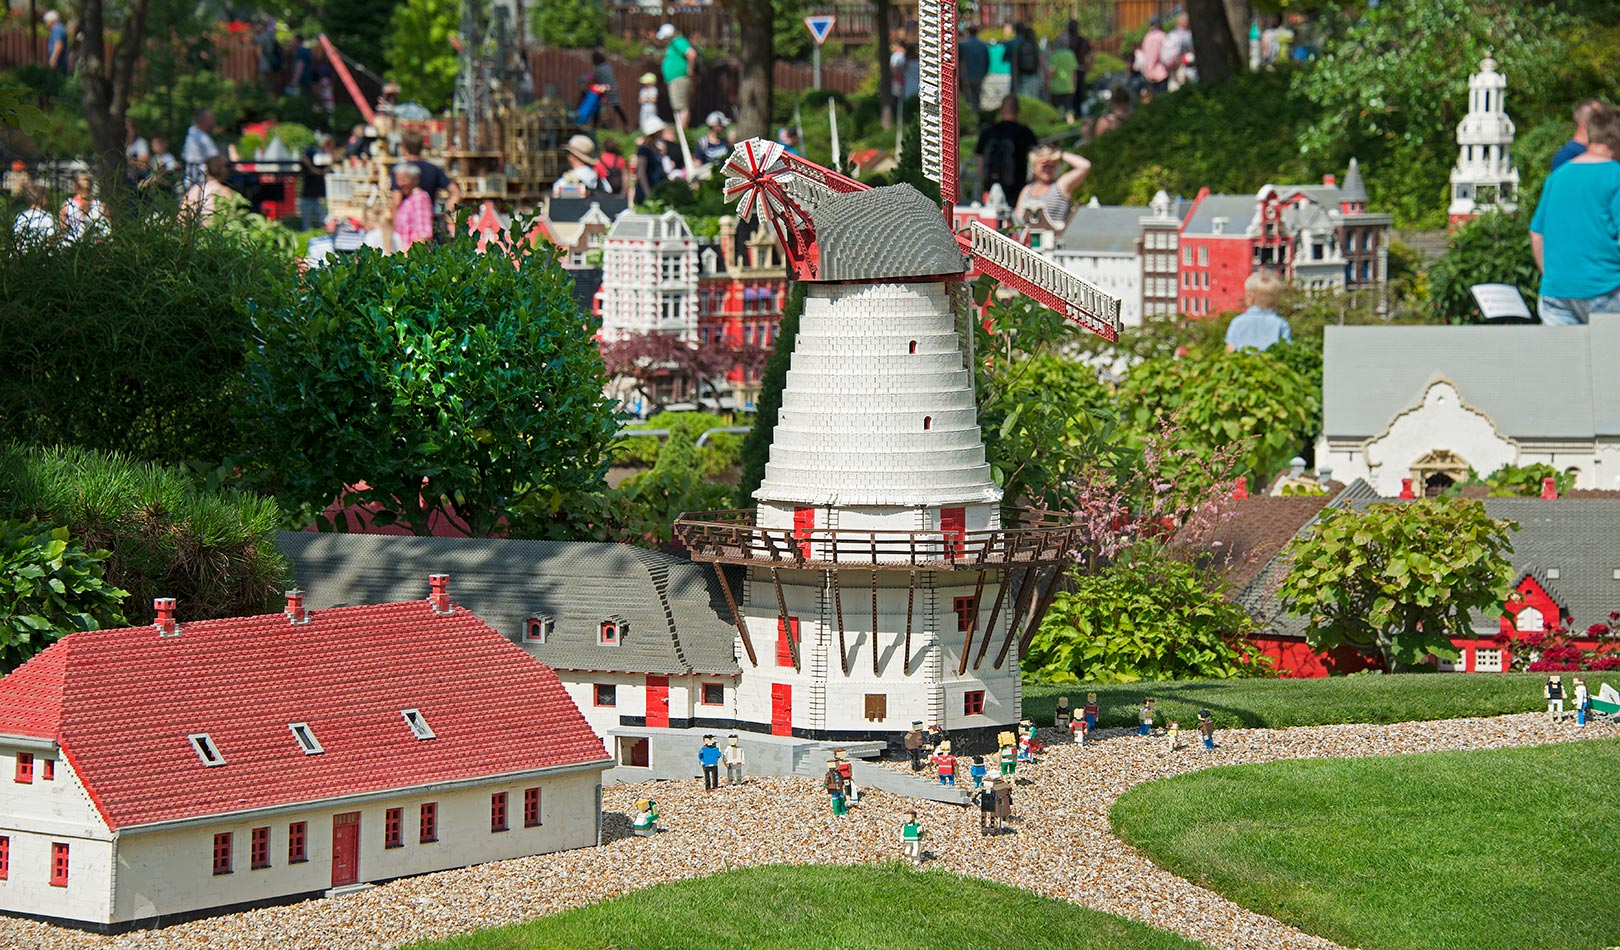 Small mill in Legoland, Billund.